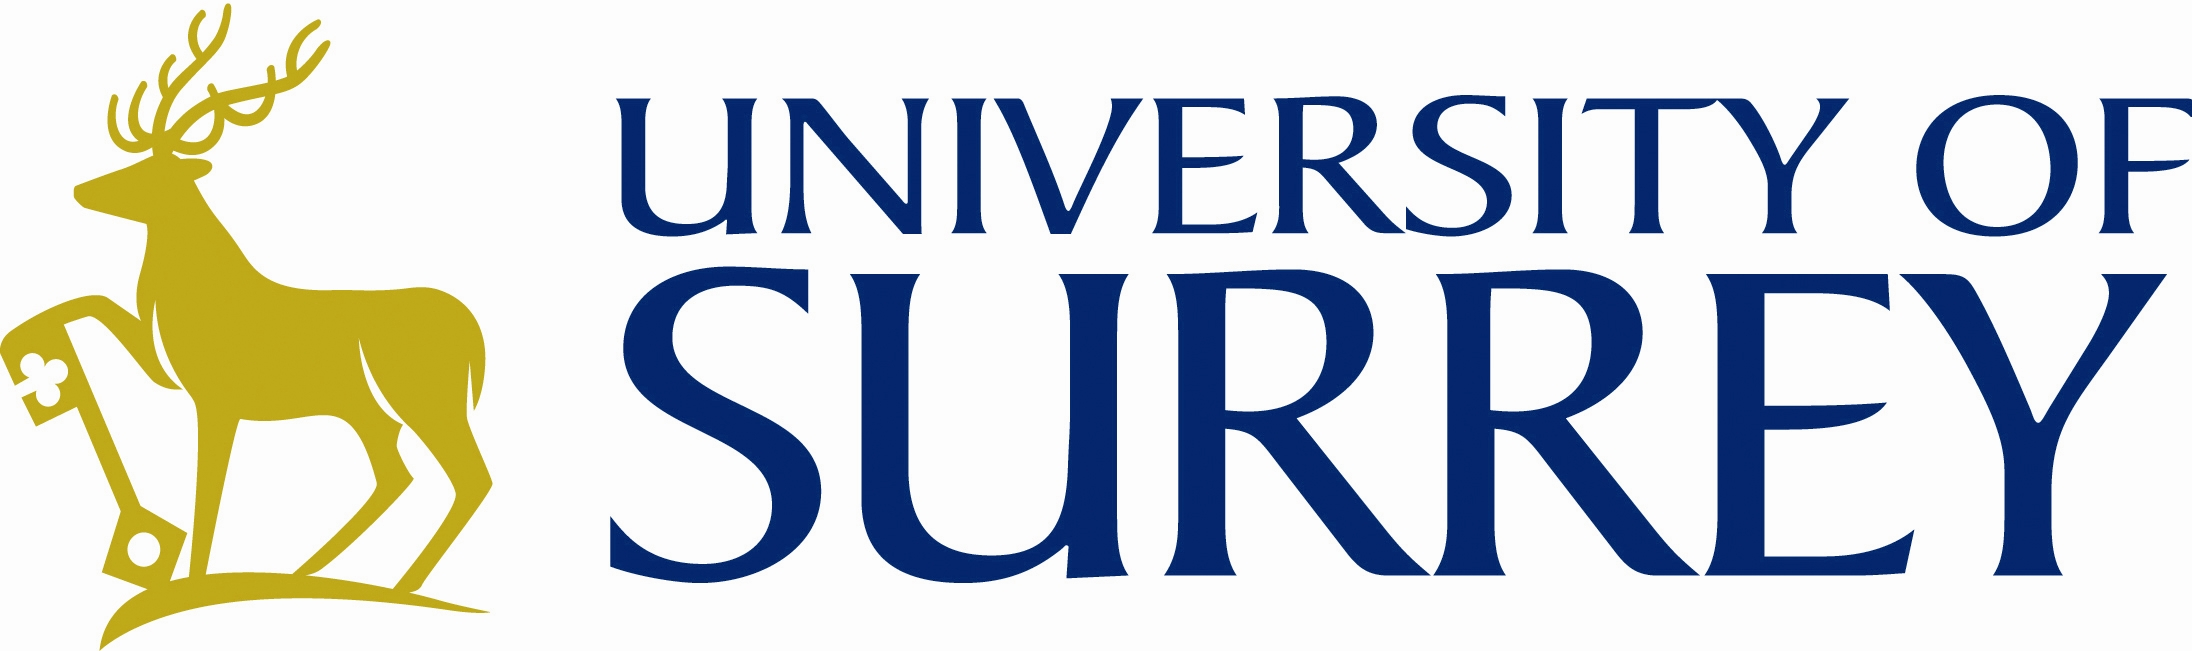 Department of Physics, University of Surrey